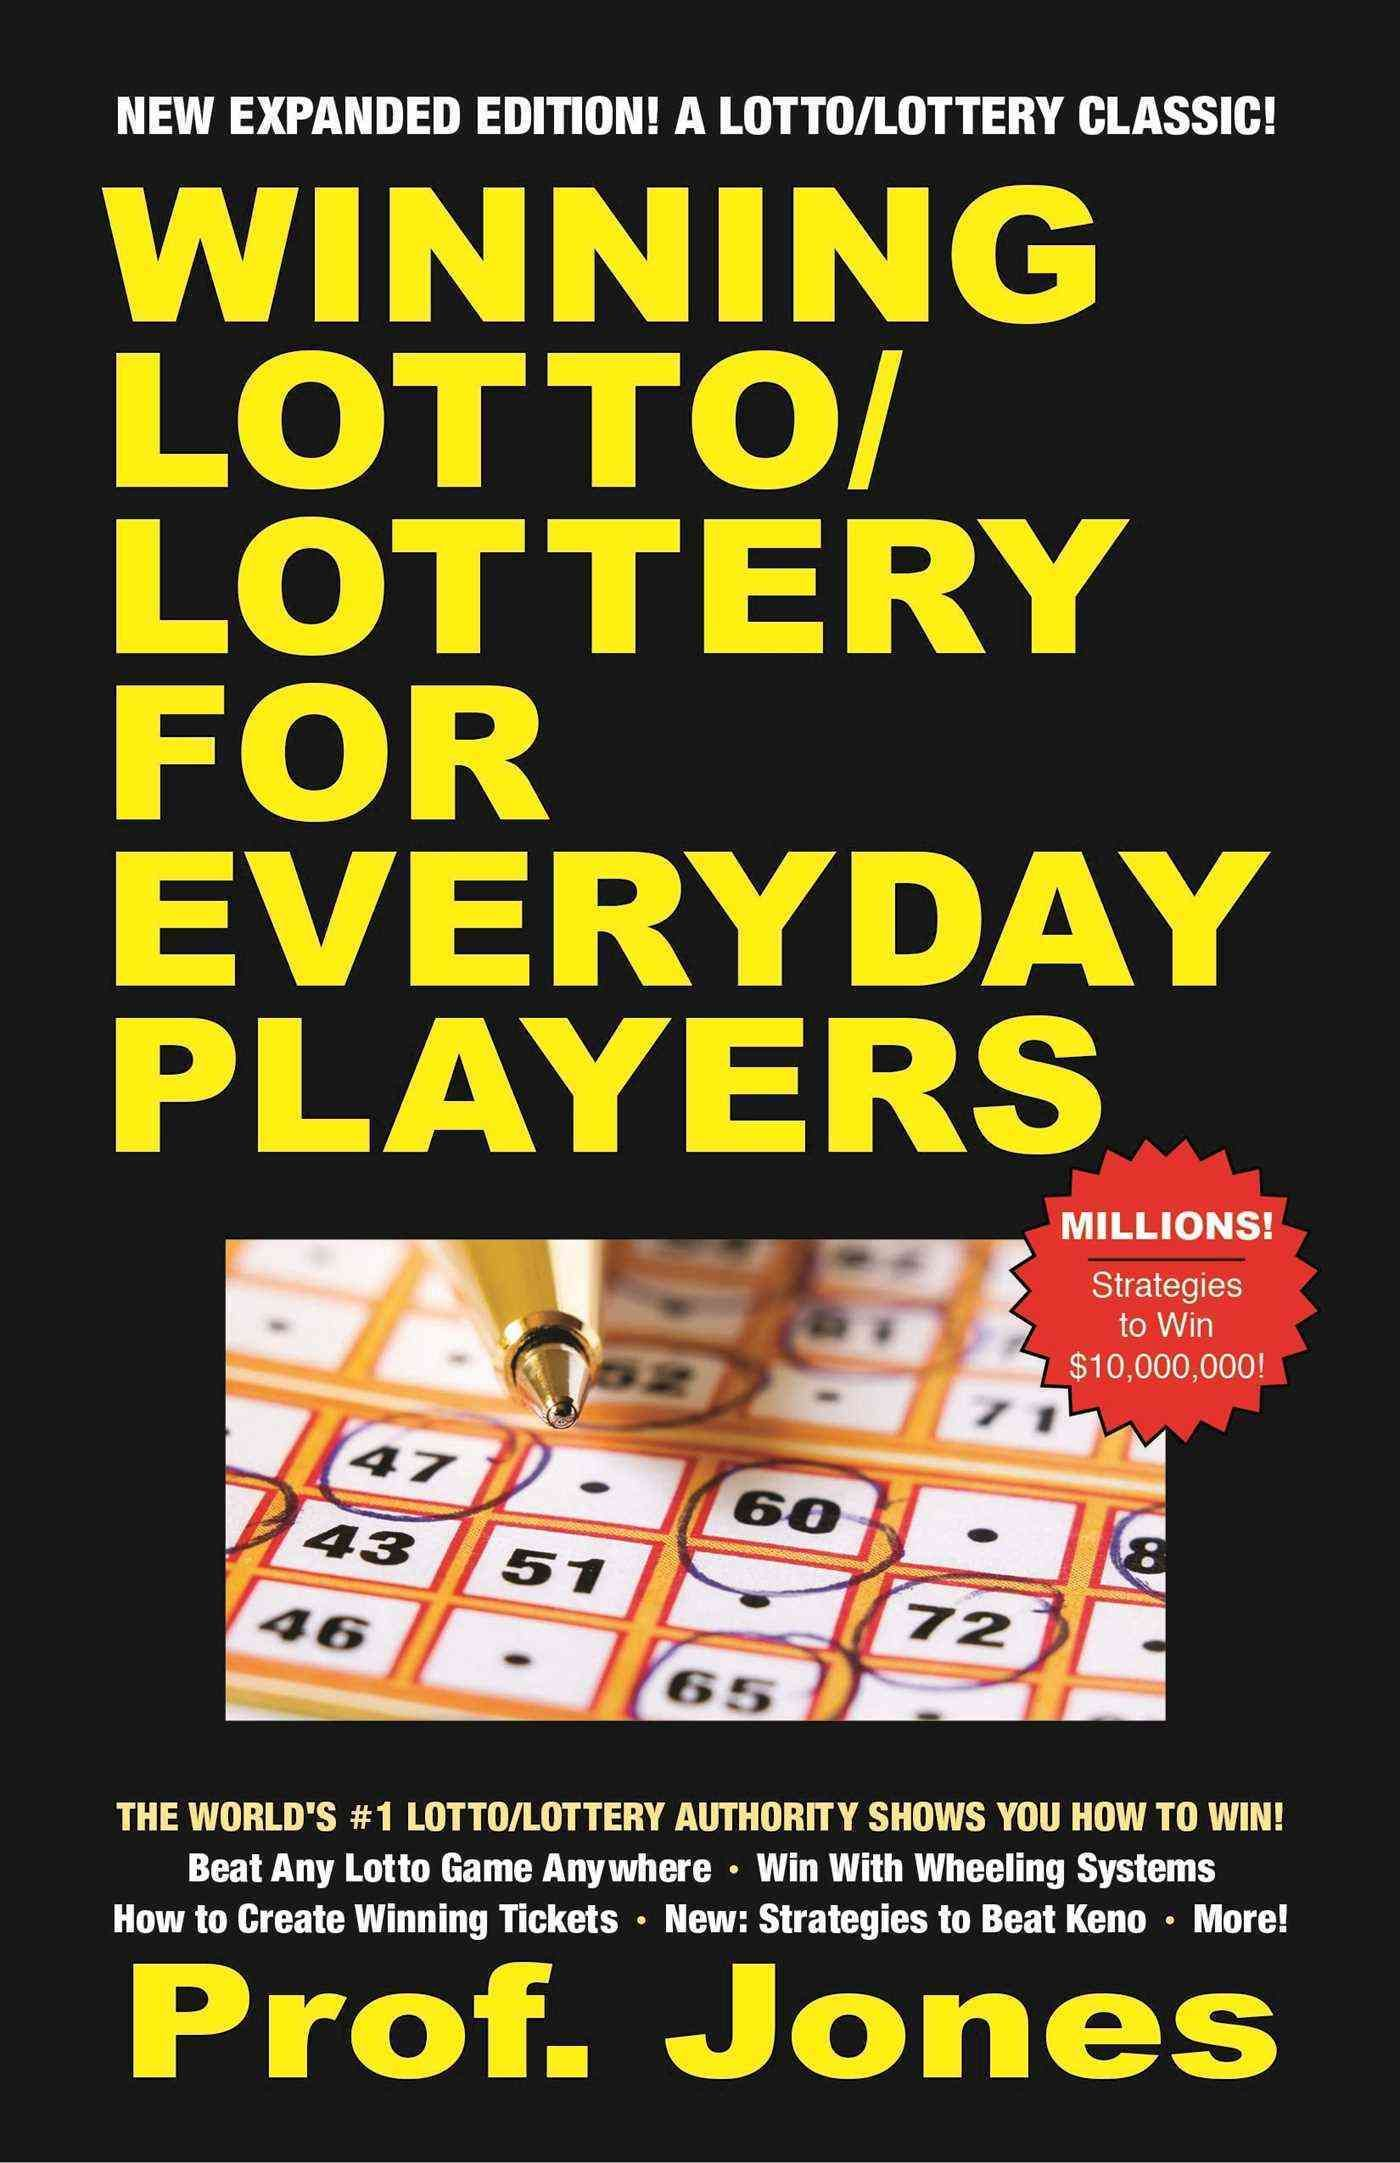 Join the many players who've won million and multimillion dollar jackpots at lotto and lottery using Prof. Jones' winning strategies! This is the book 150 million people would love to read. The worlds